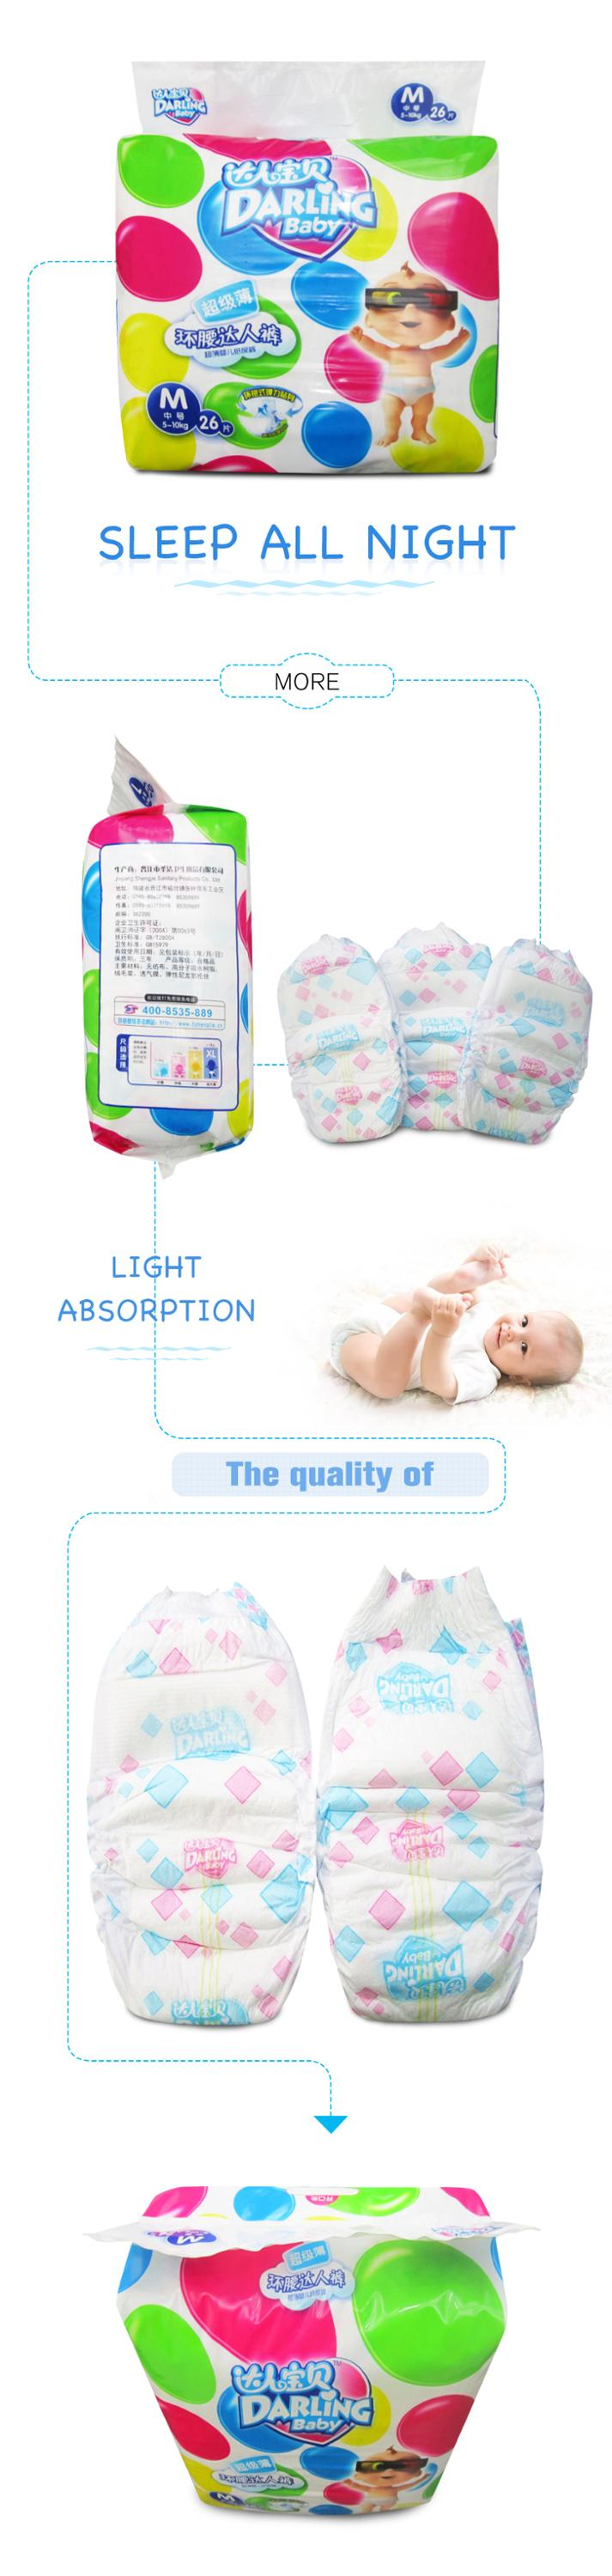 New shelves breathable disposable sun baby adult nappy care daily training pants diapers manufacturers